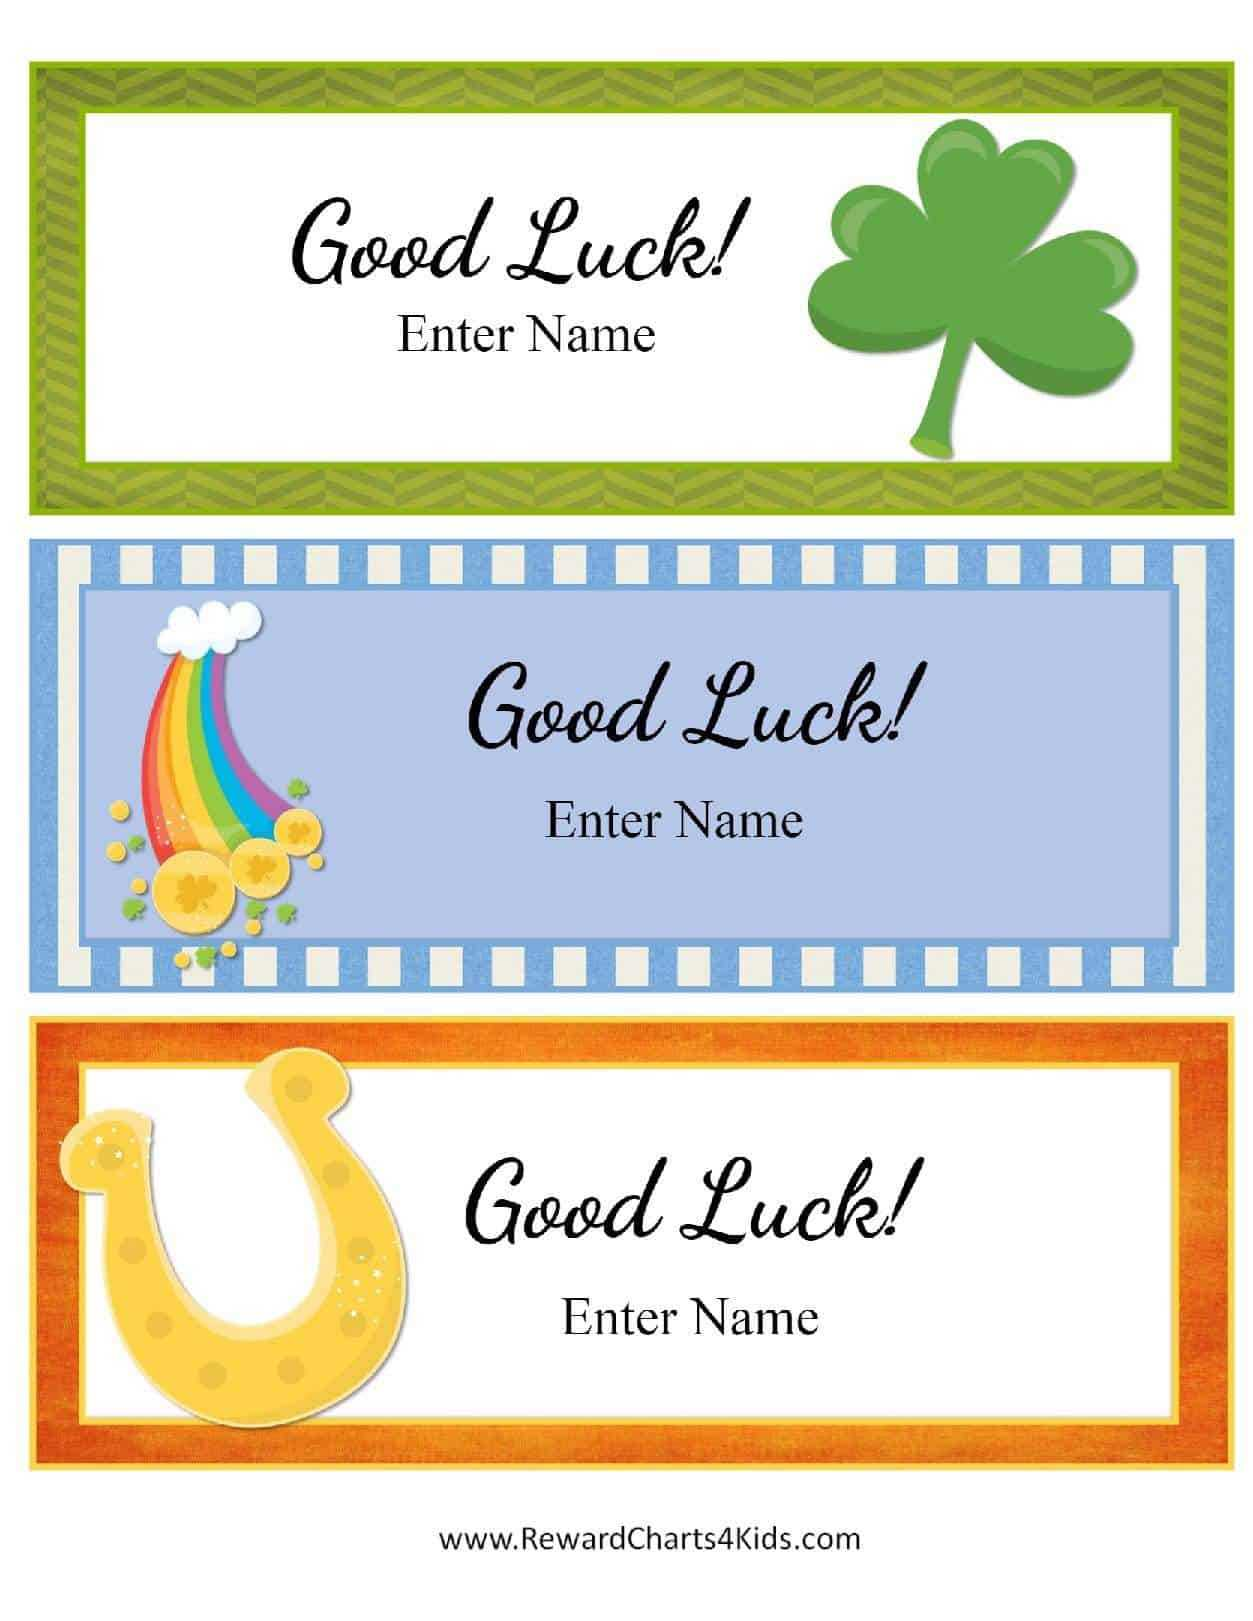 Free Good Luck Cards For Kids | Customize Online & Print At Home Intended For Good Luck Card Template